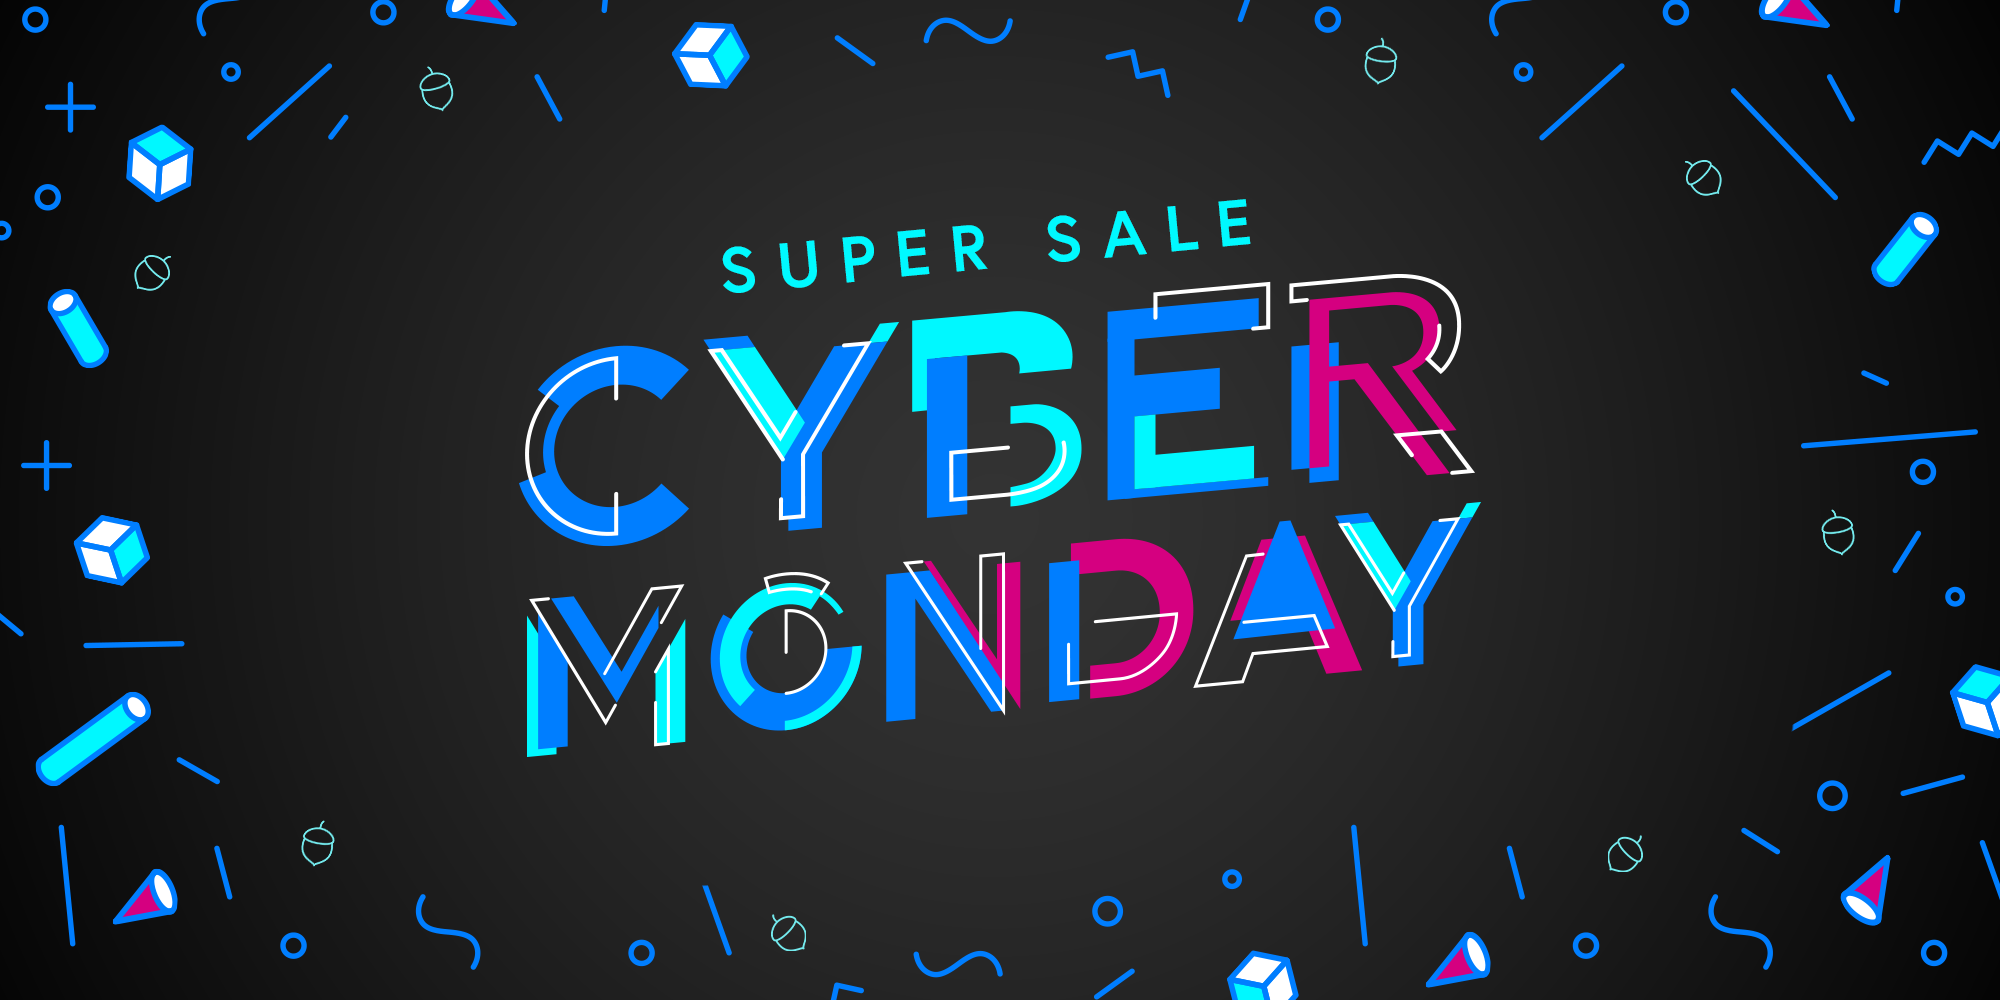 Get 40% off AirParrot, Reflector and More on Cyber Monday 2019